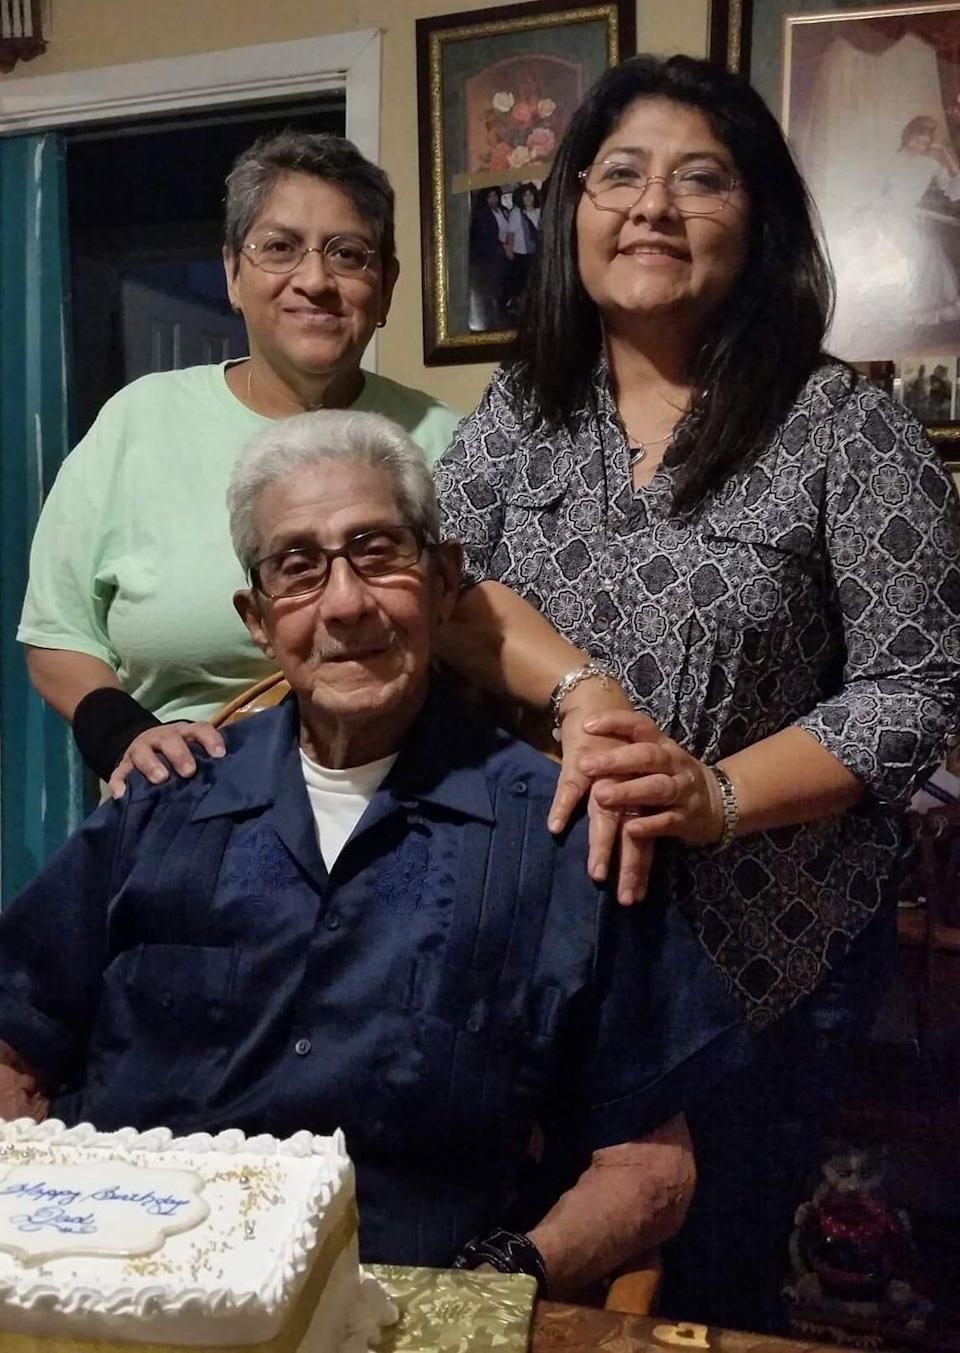 Guadalupe Ramirez (back left) with her partner Diane Muniz and her late father, Celedonio Ramirez. Guadalupe, who was at high risk for serious COVID-19, received monoclonal antibodies after her positive diagnosis in January 2021.